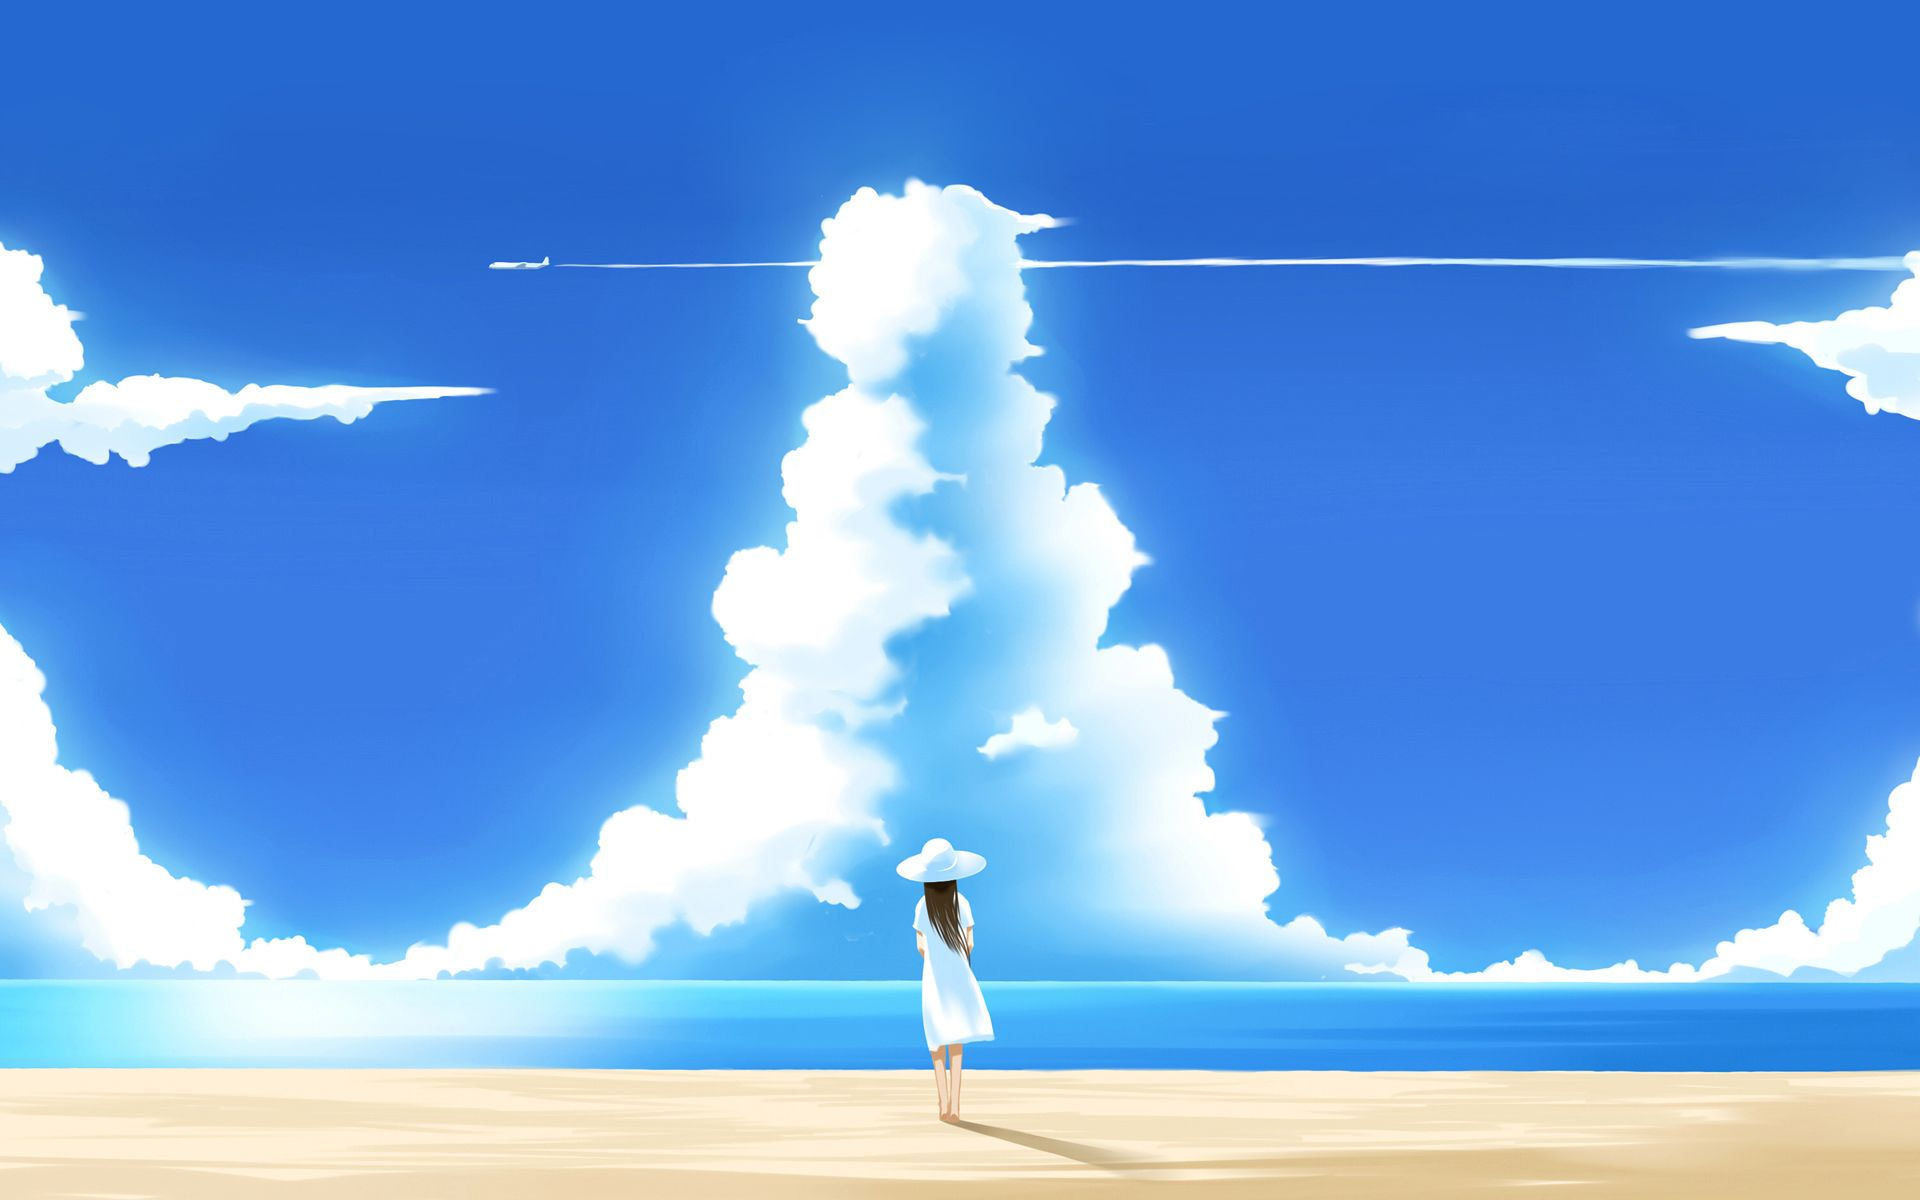 Anime Sky Background Download 1920x1200 Wallpaper Scenery